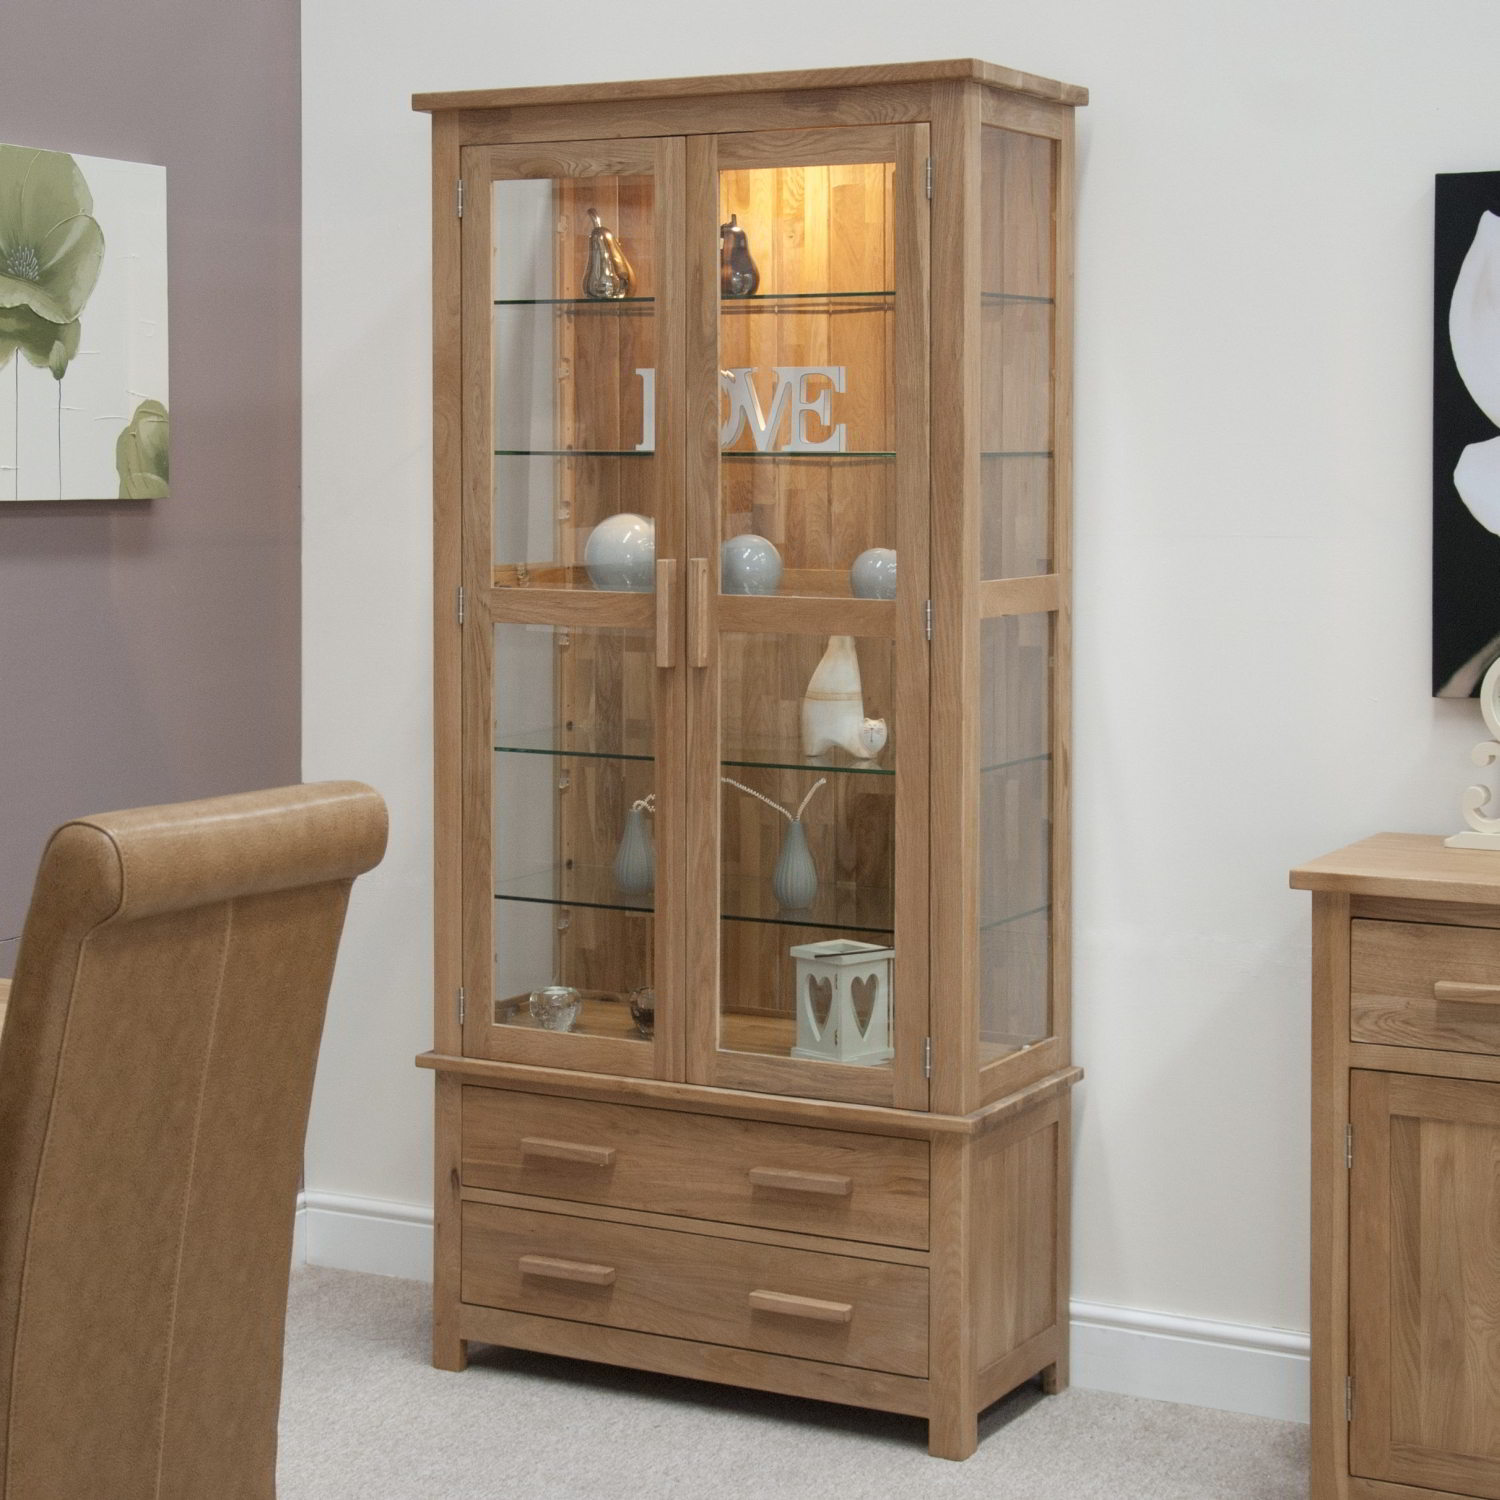 Eton Solid Oak Living Room Furniture Glazed Display Cabinet Cupboard EBay